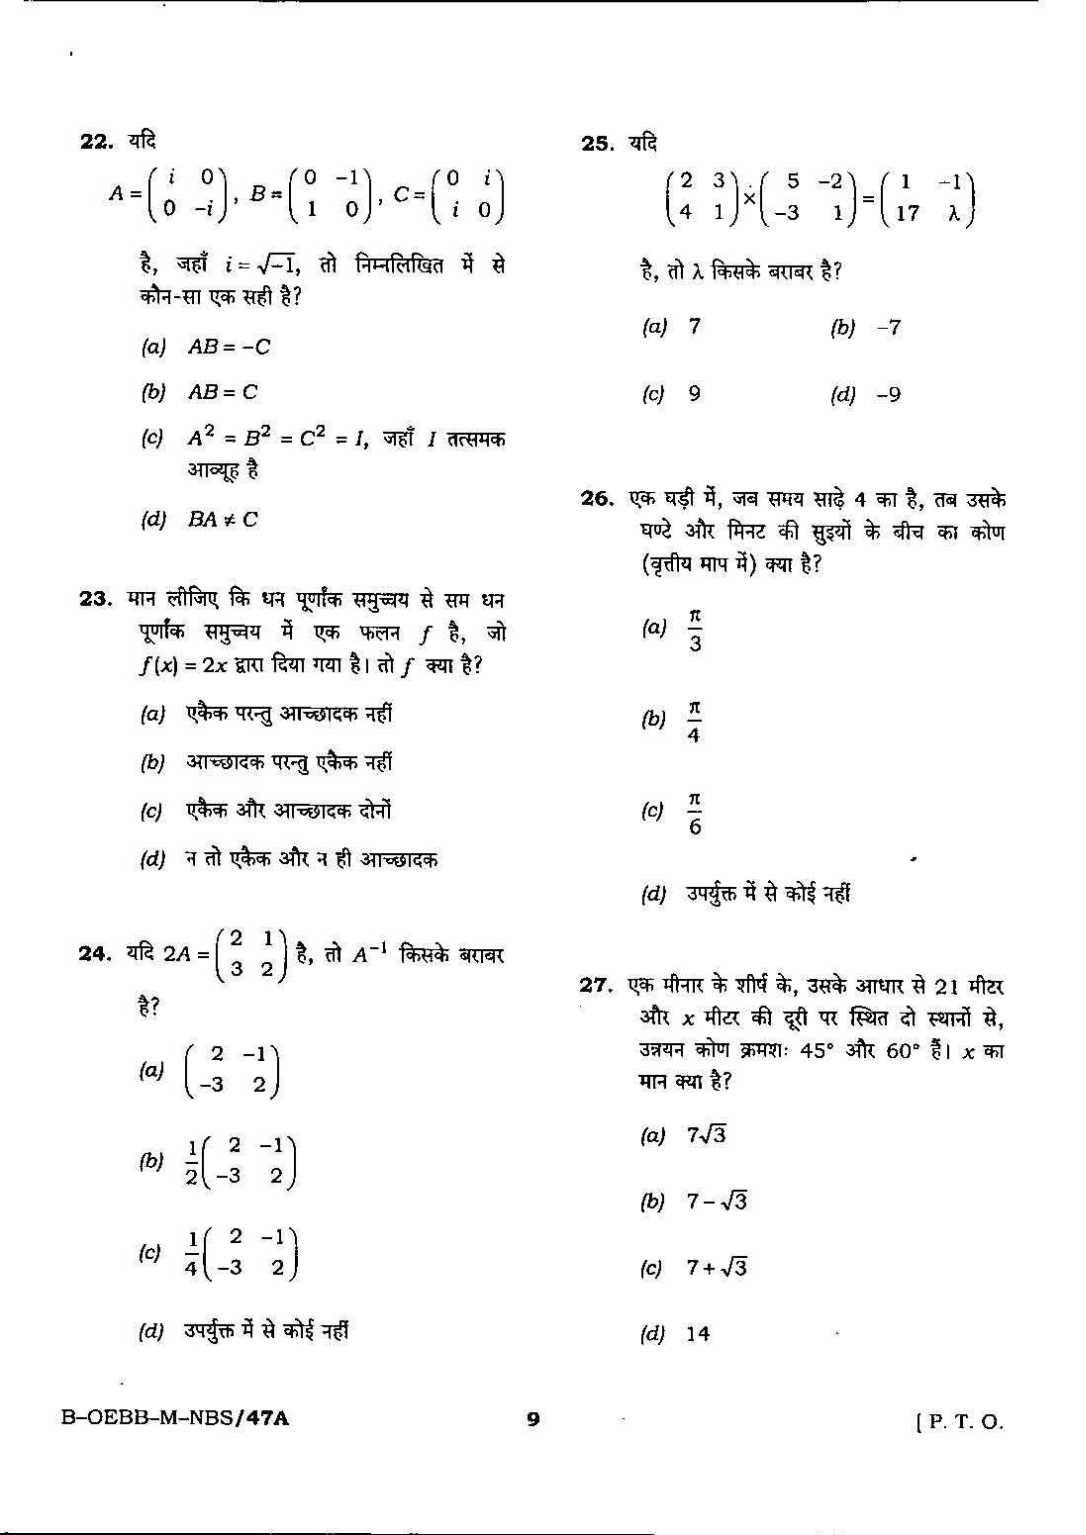 jnu entrance exam question papers political science pdf